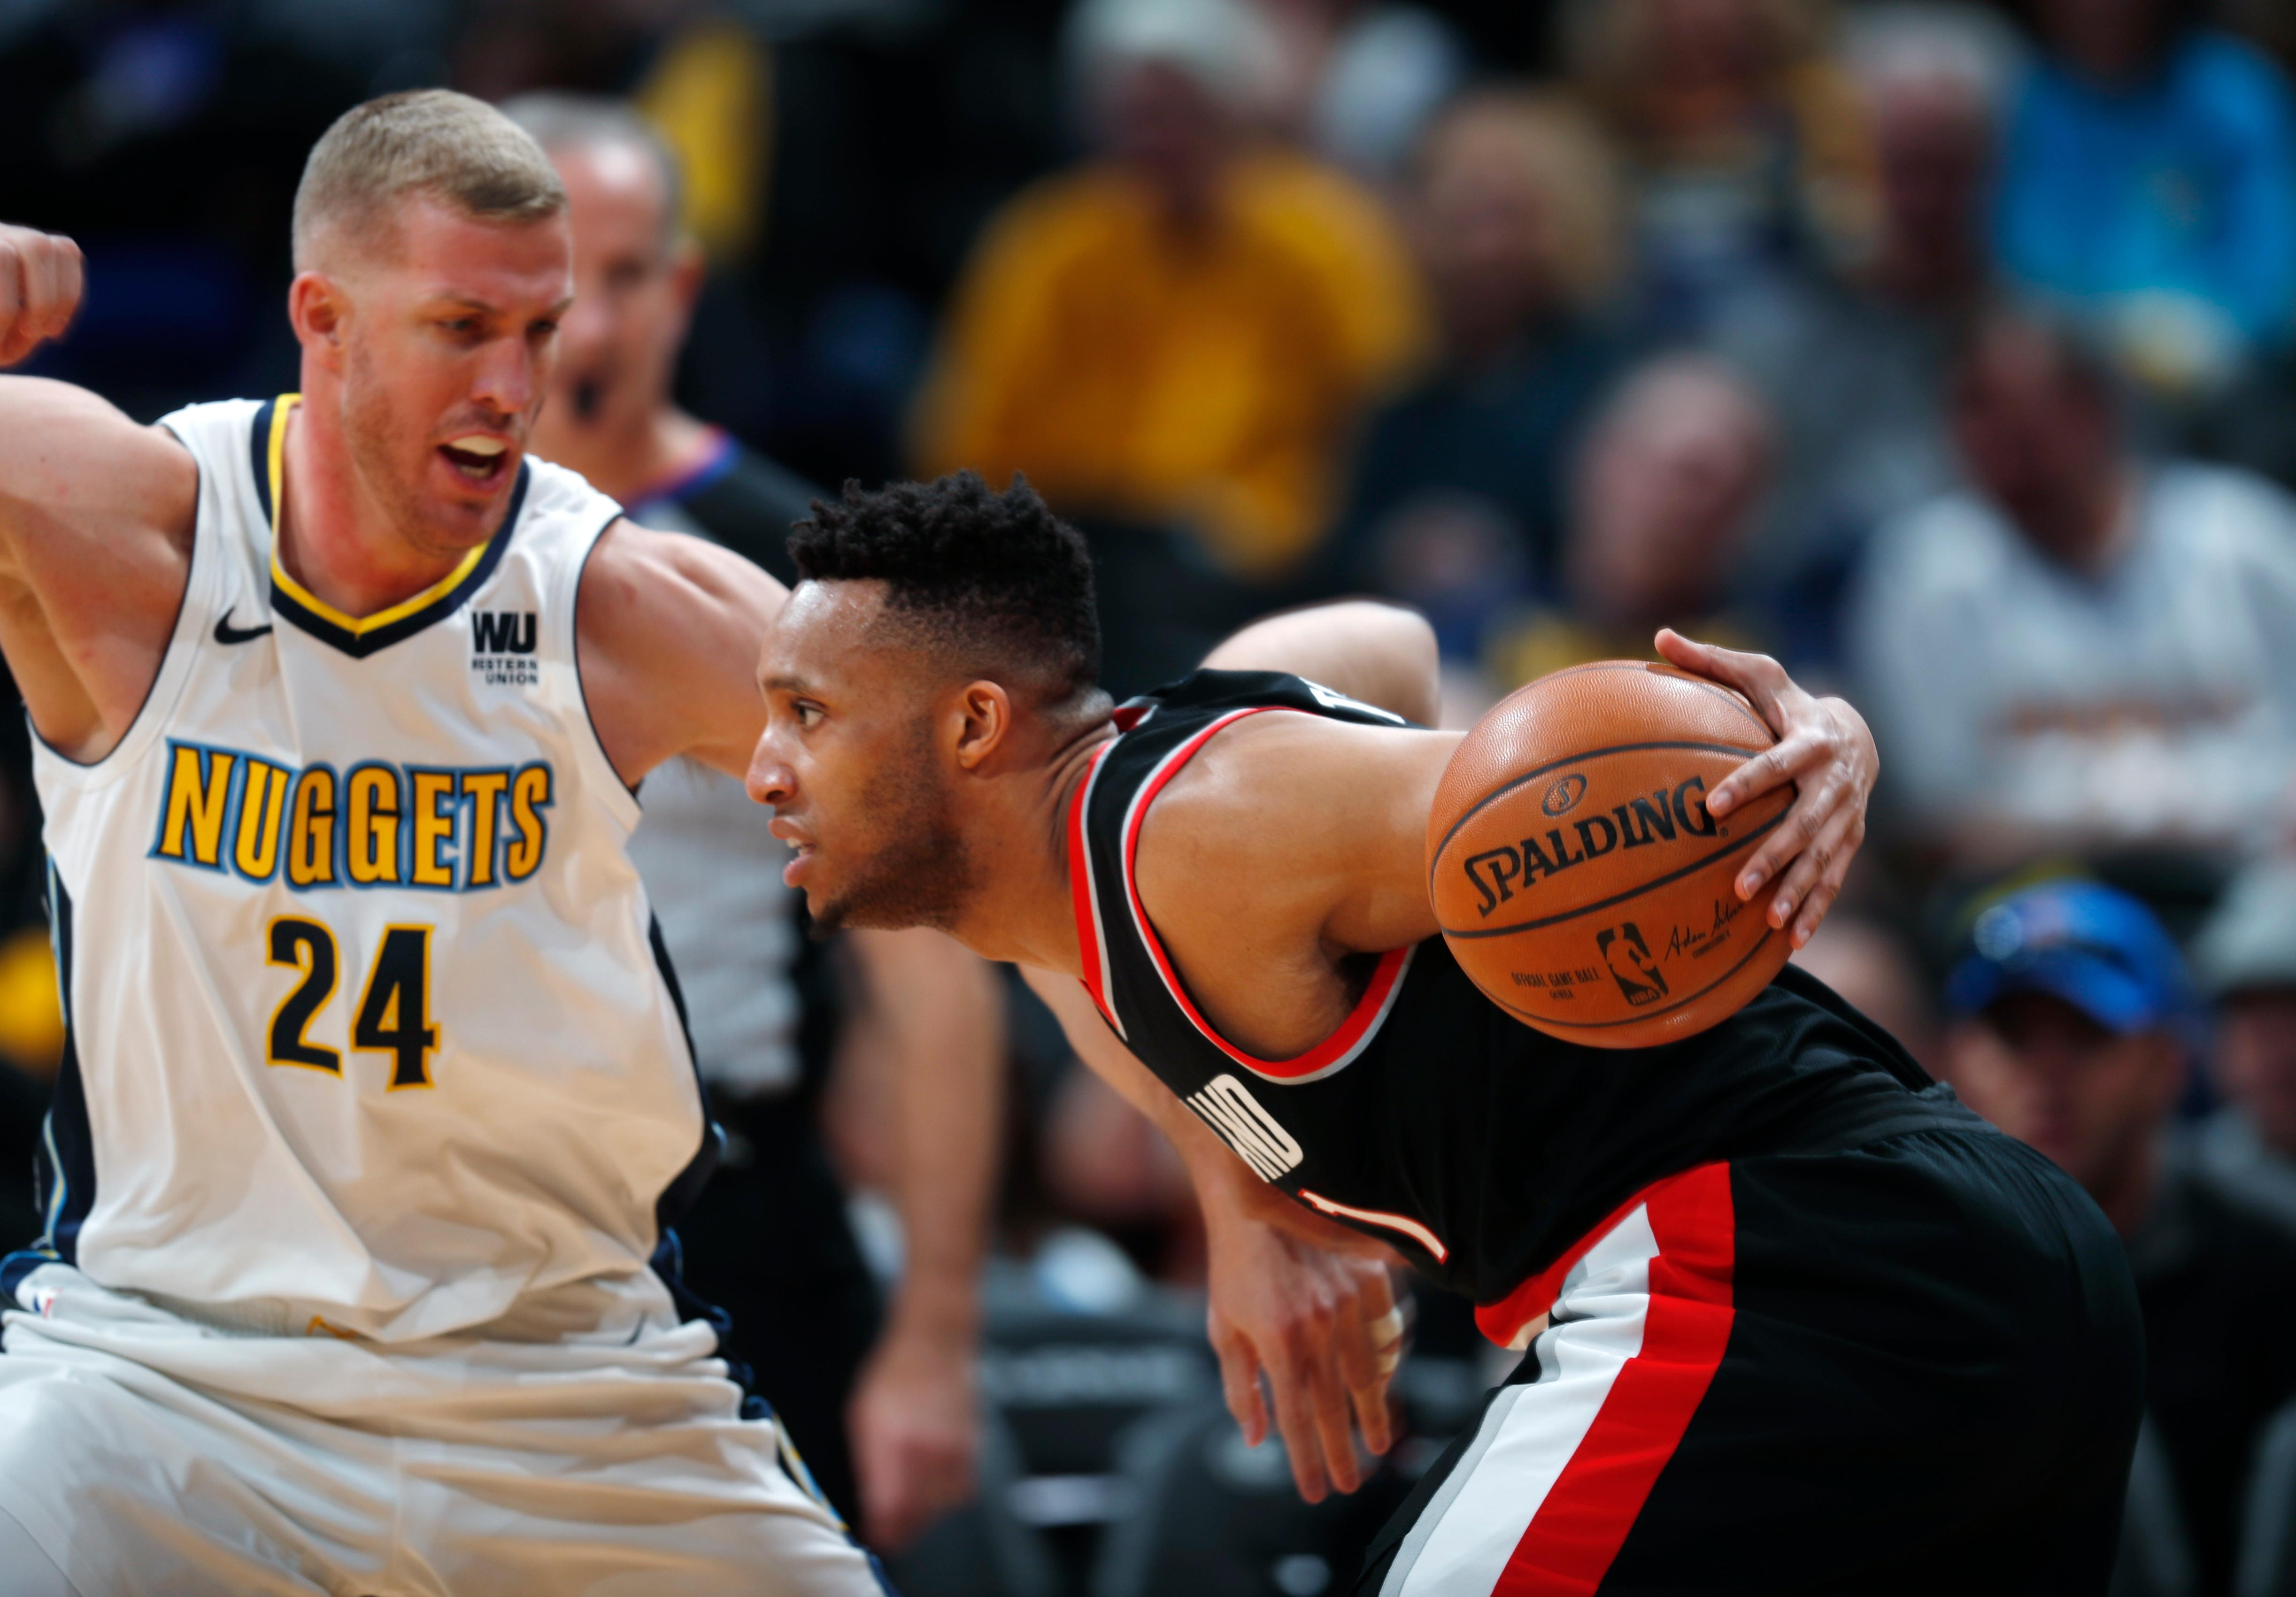 Denver Nuggets center Mason Plumlee, left, defends as Portland Trail Blazers guard Evan Turner tries to drive the lane in the first half of an NBA basketball game Monday, Jan. 22, 2018, in Denver. (AP Photo/David Zalubowski)